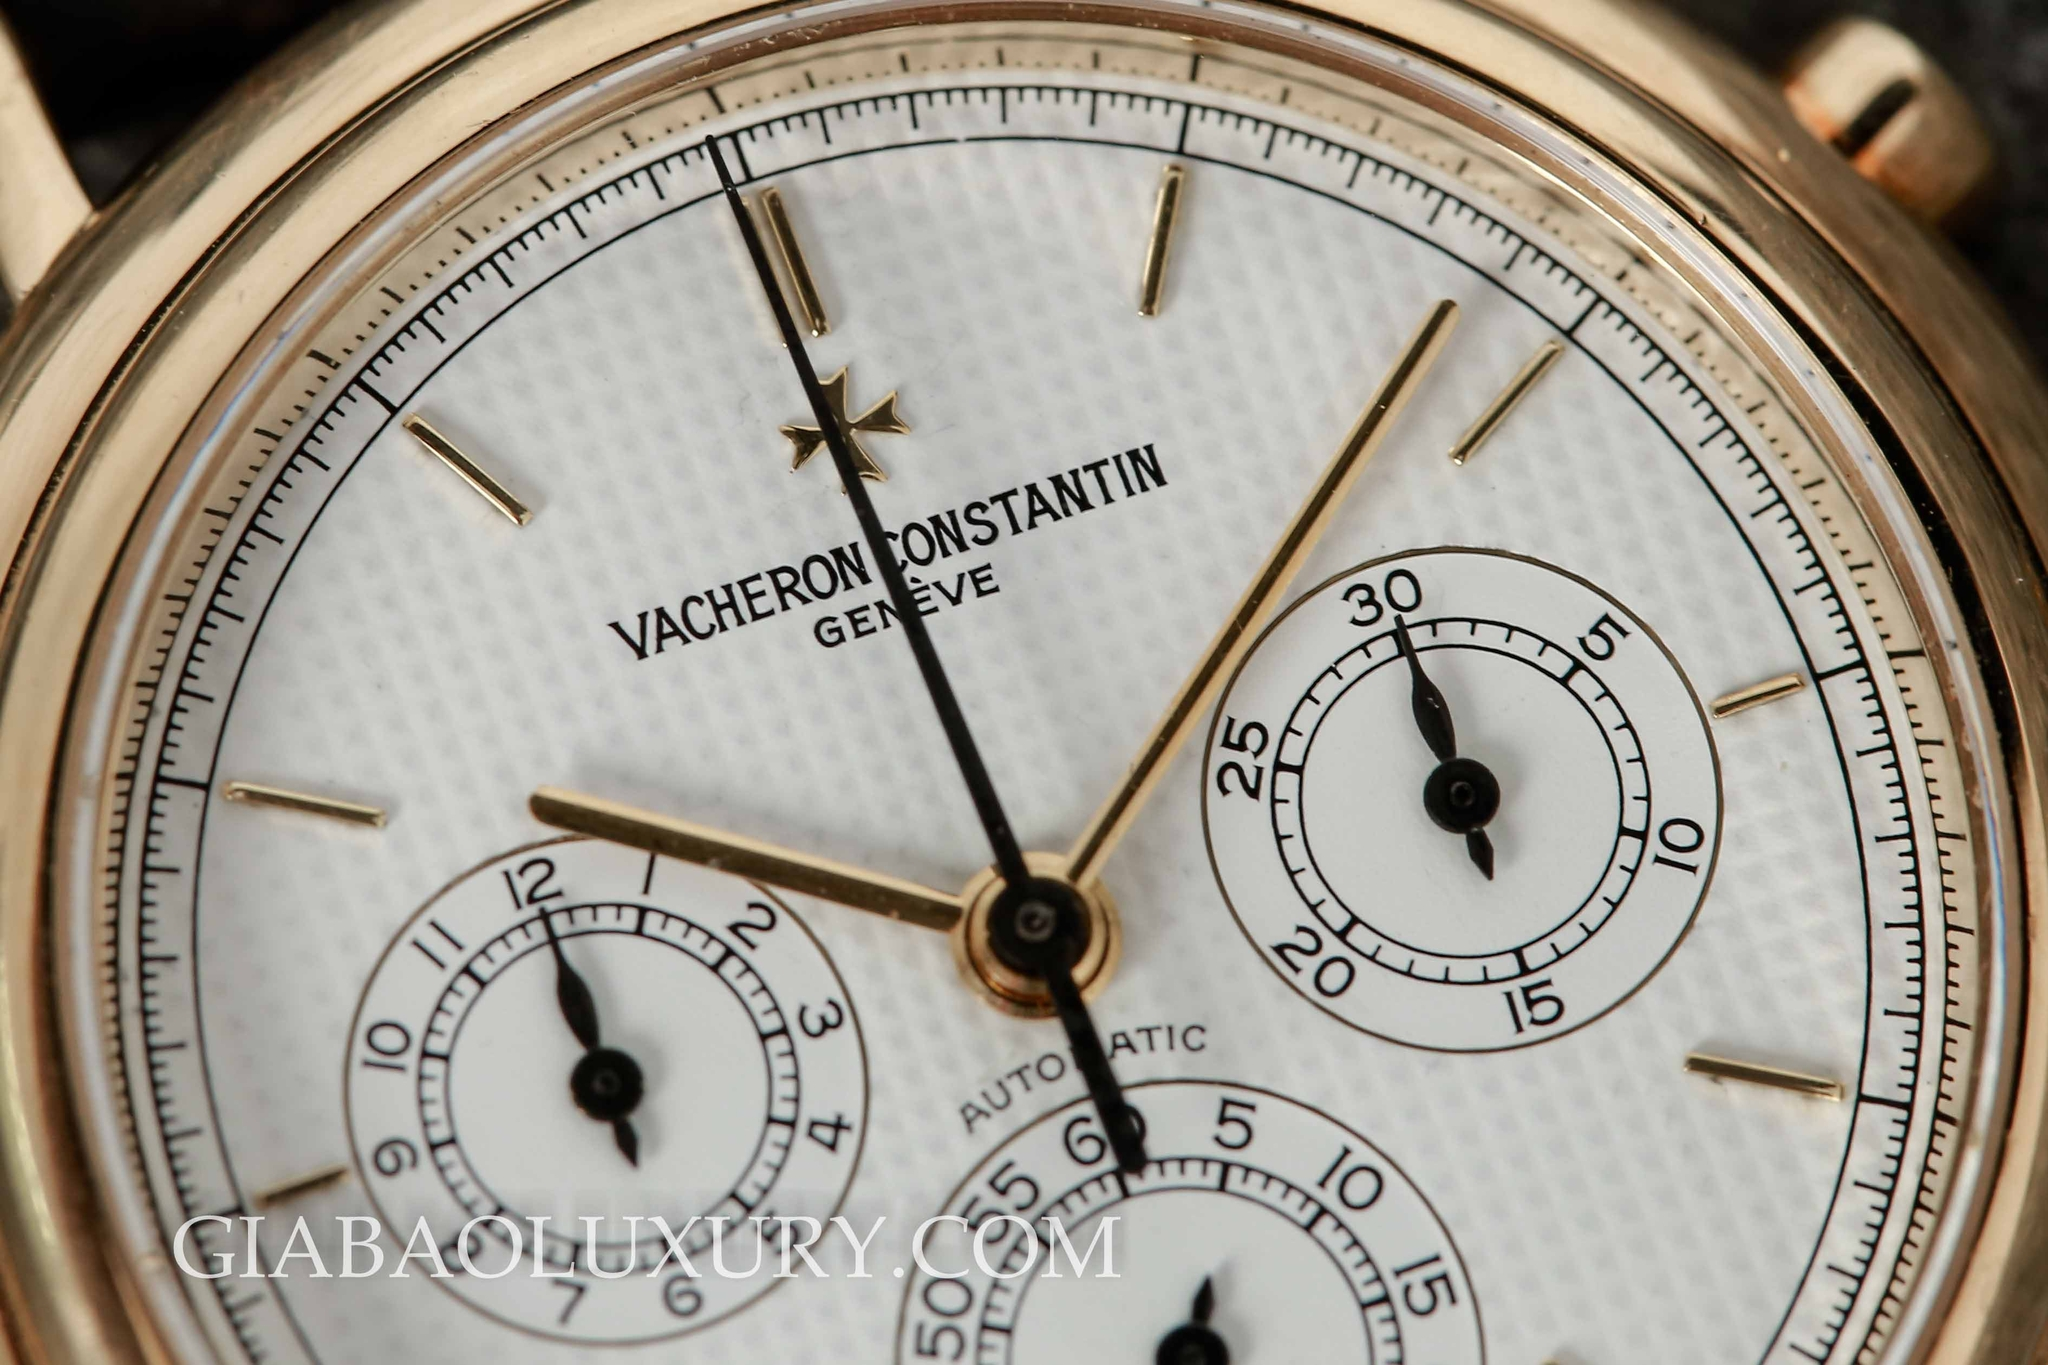 VACHERON CONSTANTIN LES COMPLICATIONS